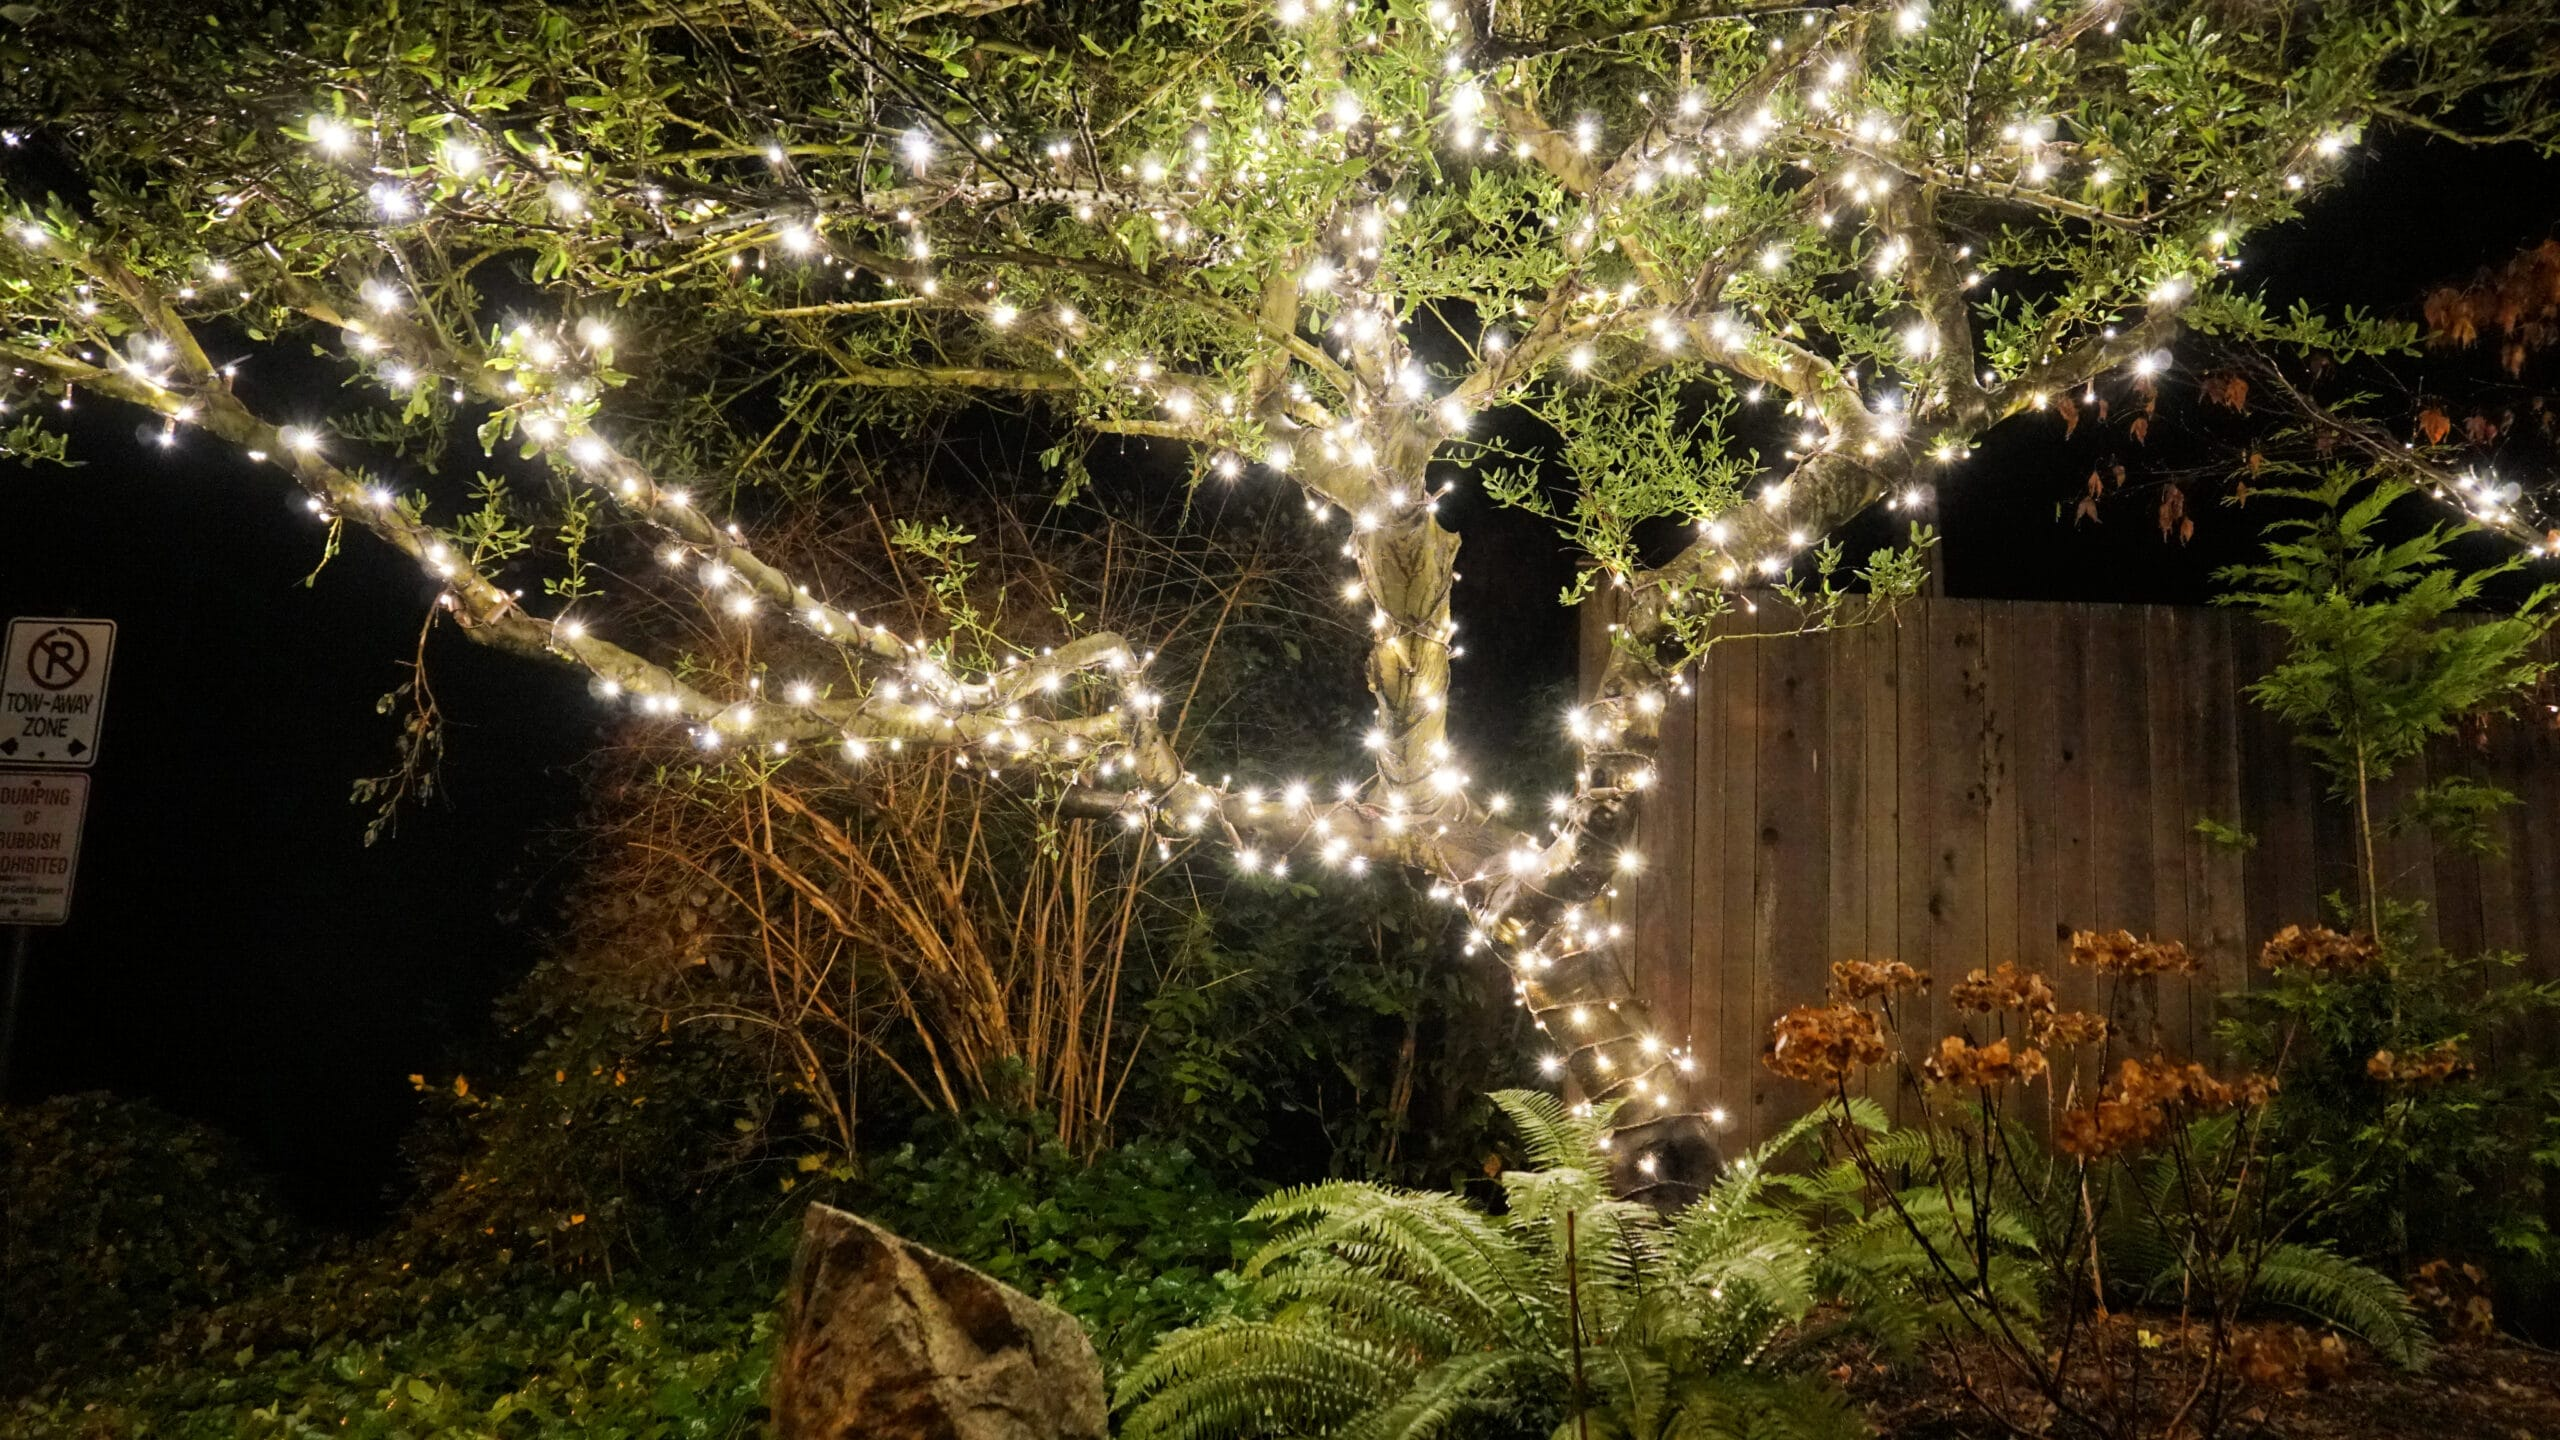 FestiLight - White String Lights - Residential Install - Christmas Decorations